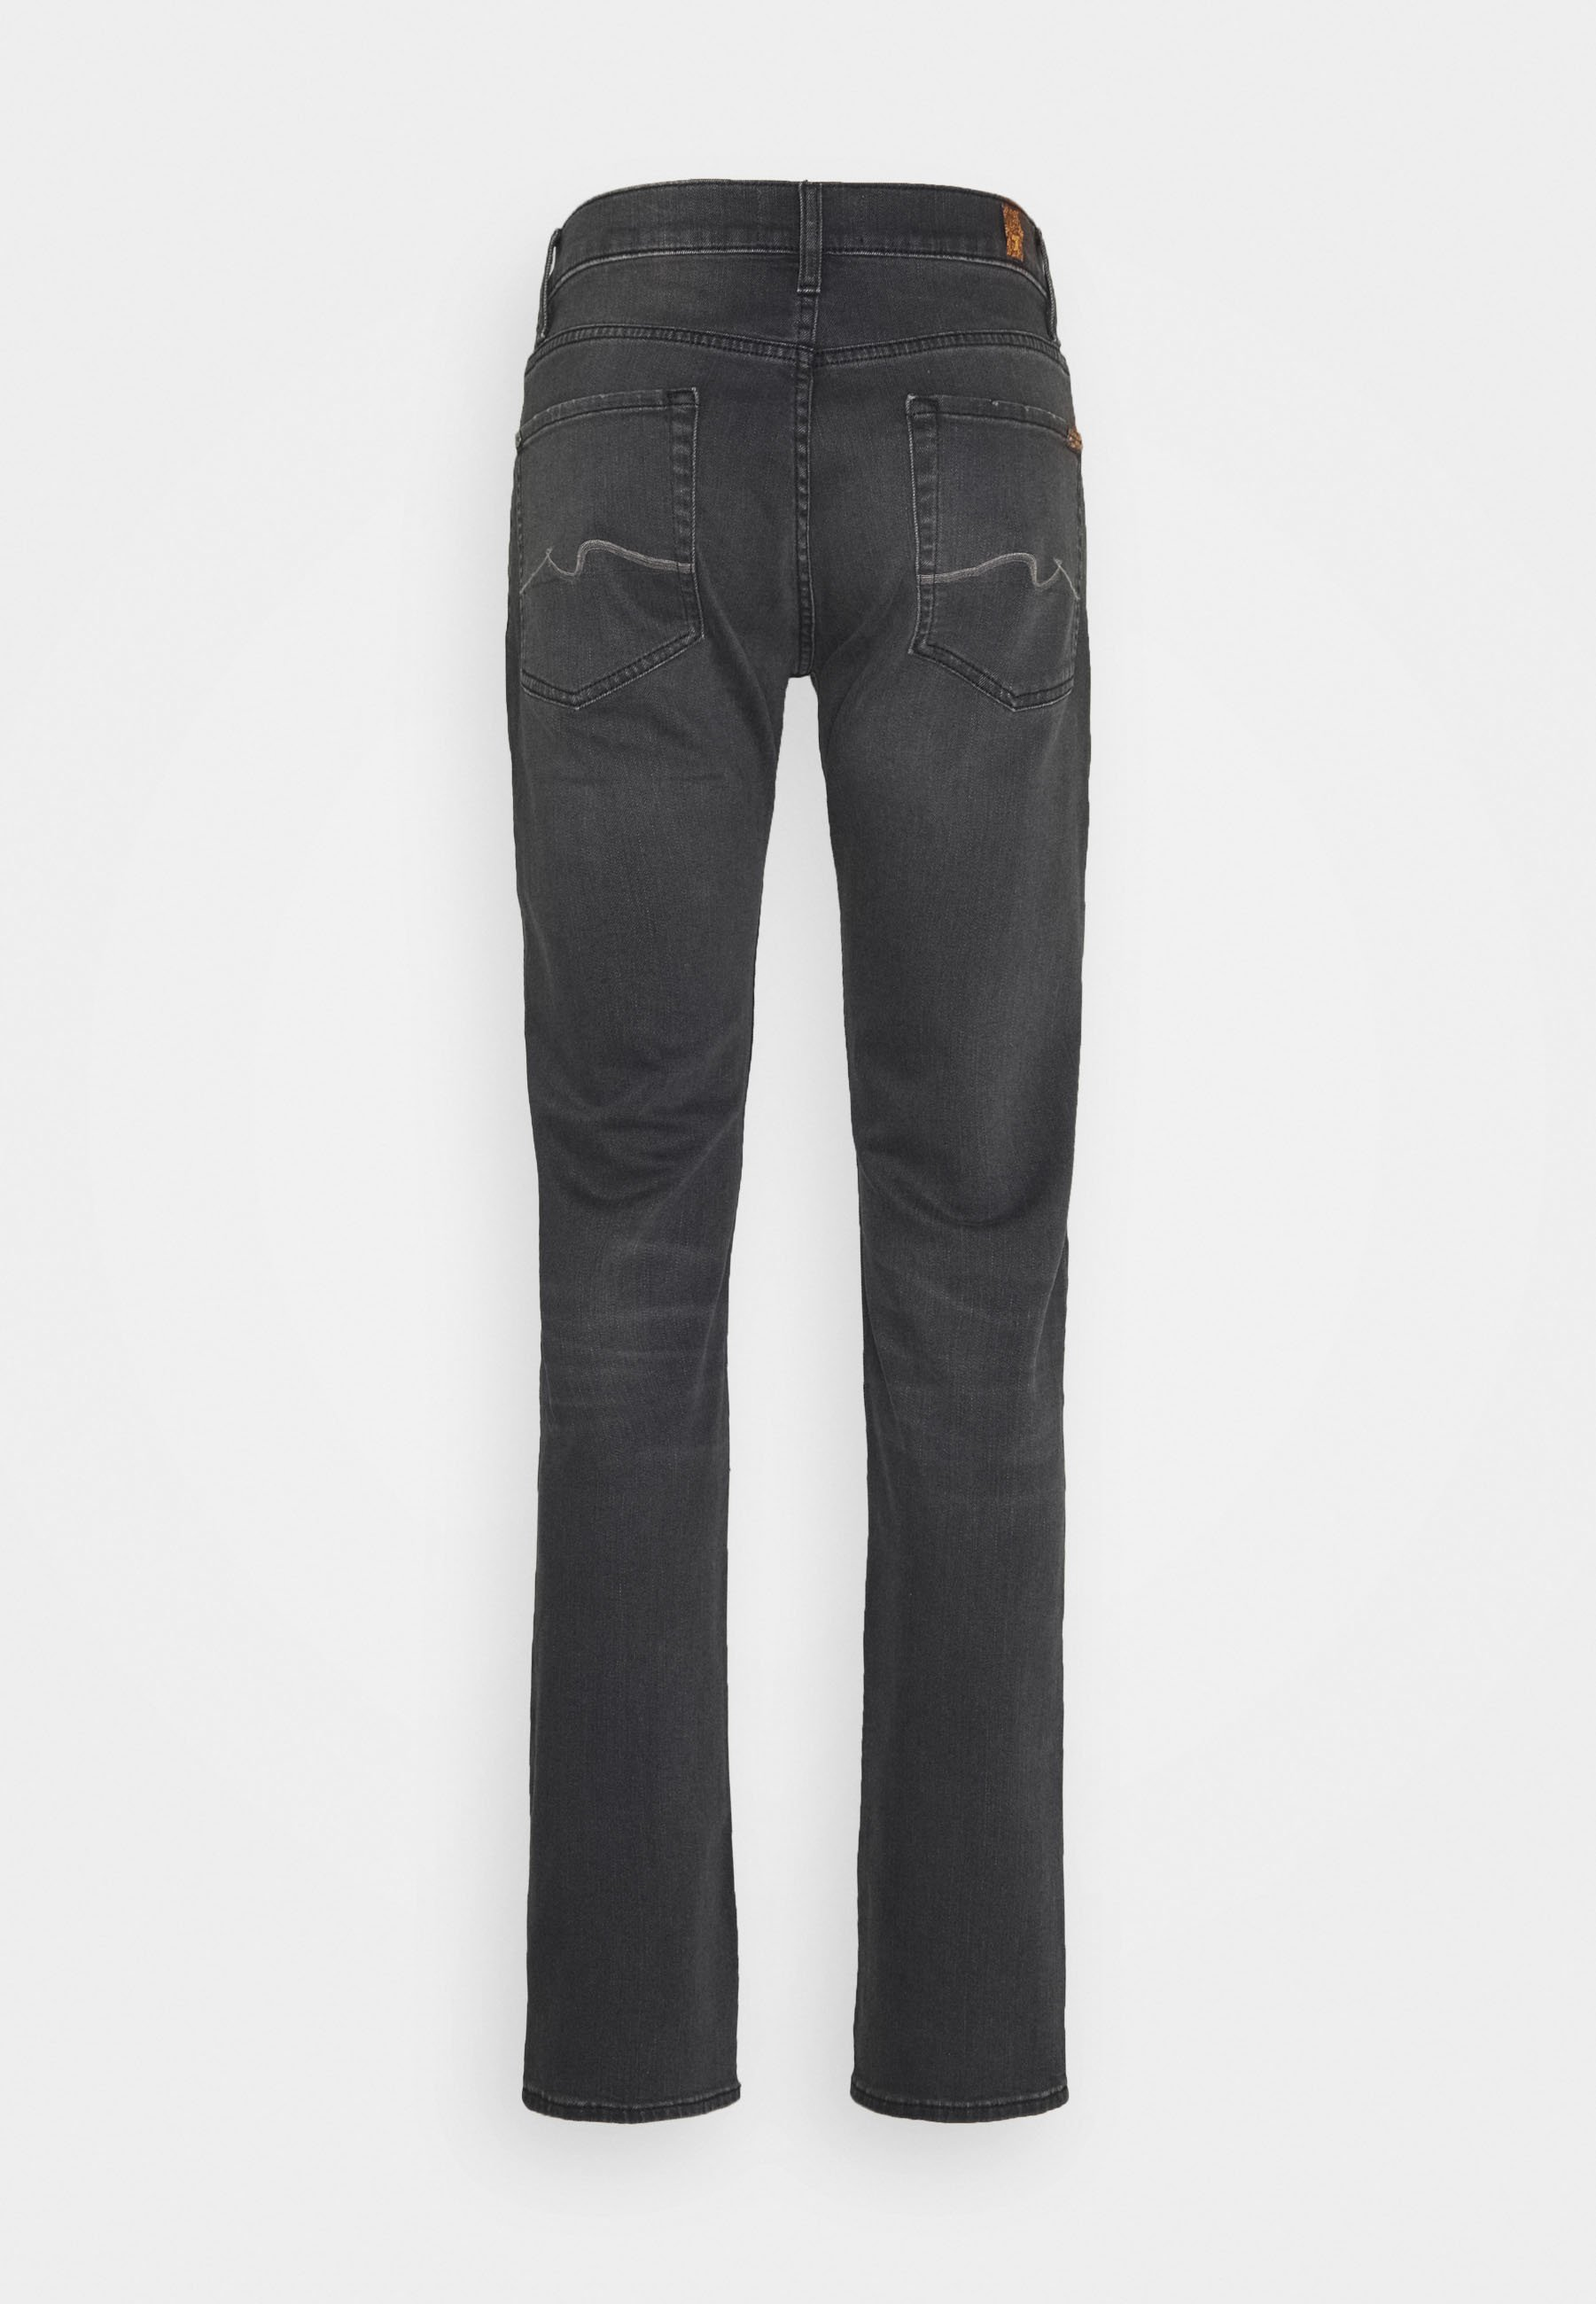 7 For All Mankind Jeansy Slim Fit - Dark Grey